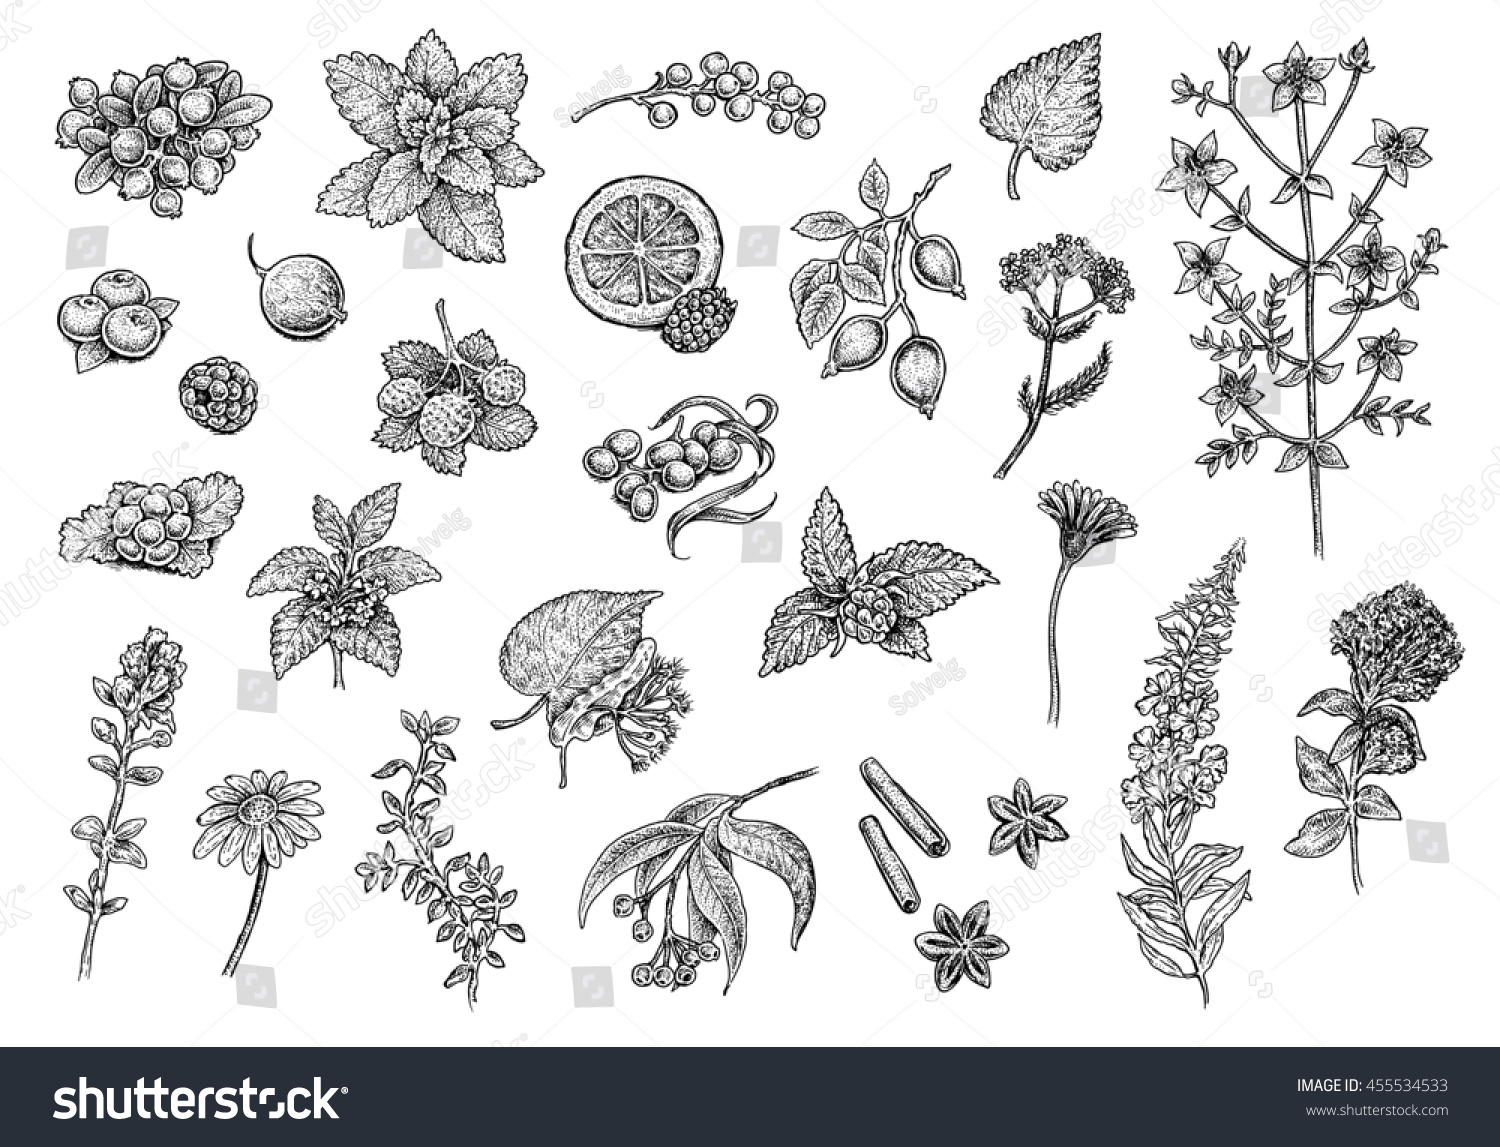 Tea Collection Fruits Herbs And Berries Set Of Hand Drawn Black